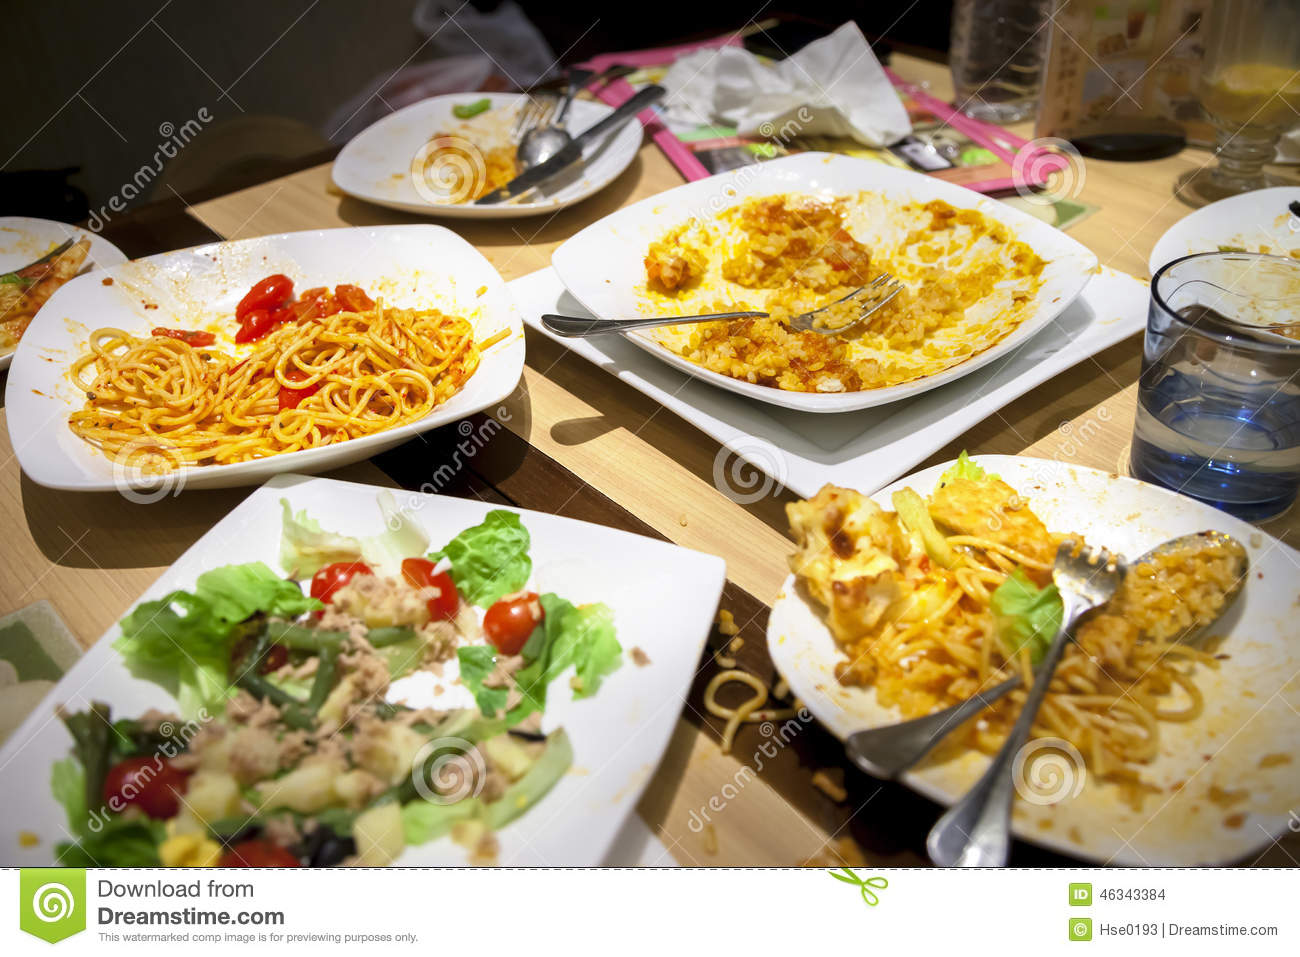 Leftover Food Stock Photo Image Of Dinner Hadit Table 46343384